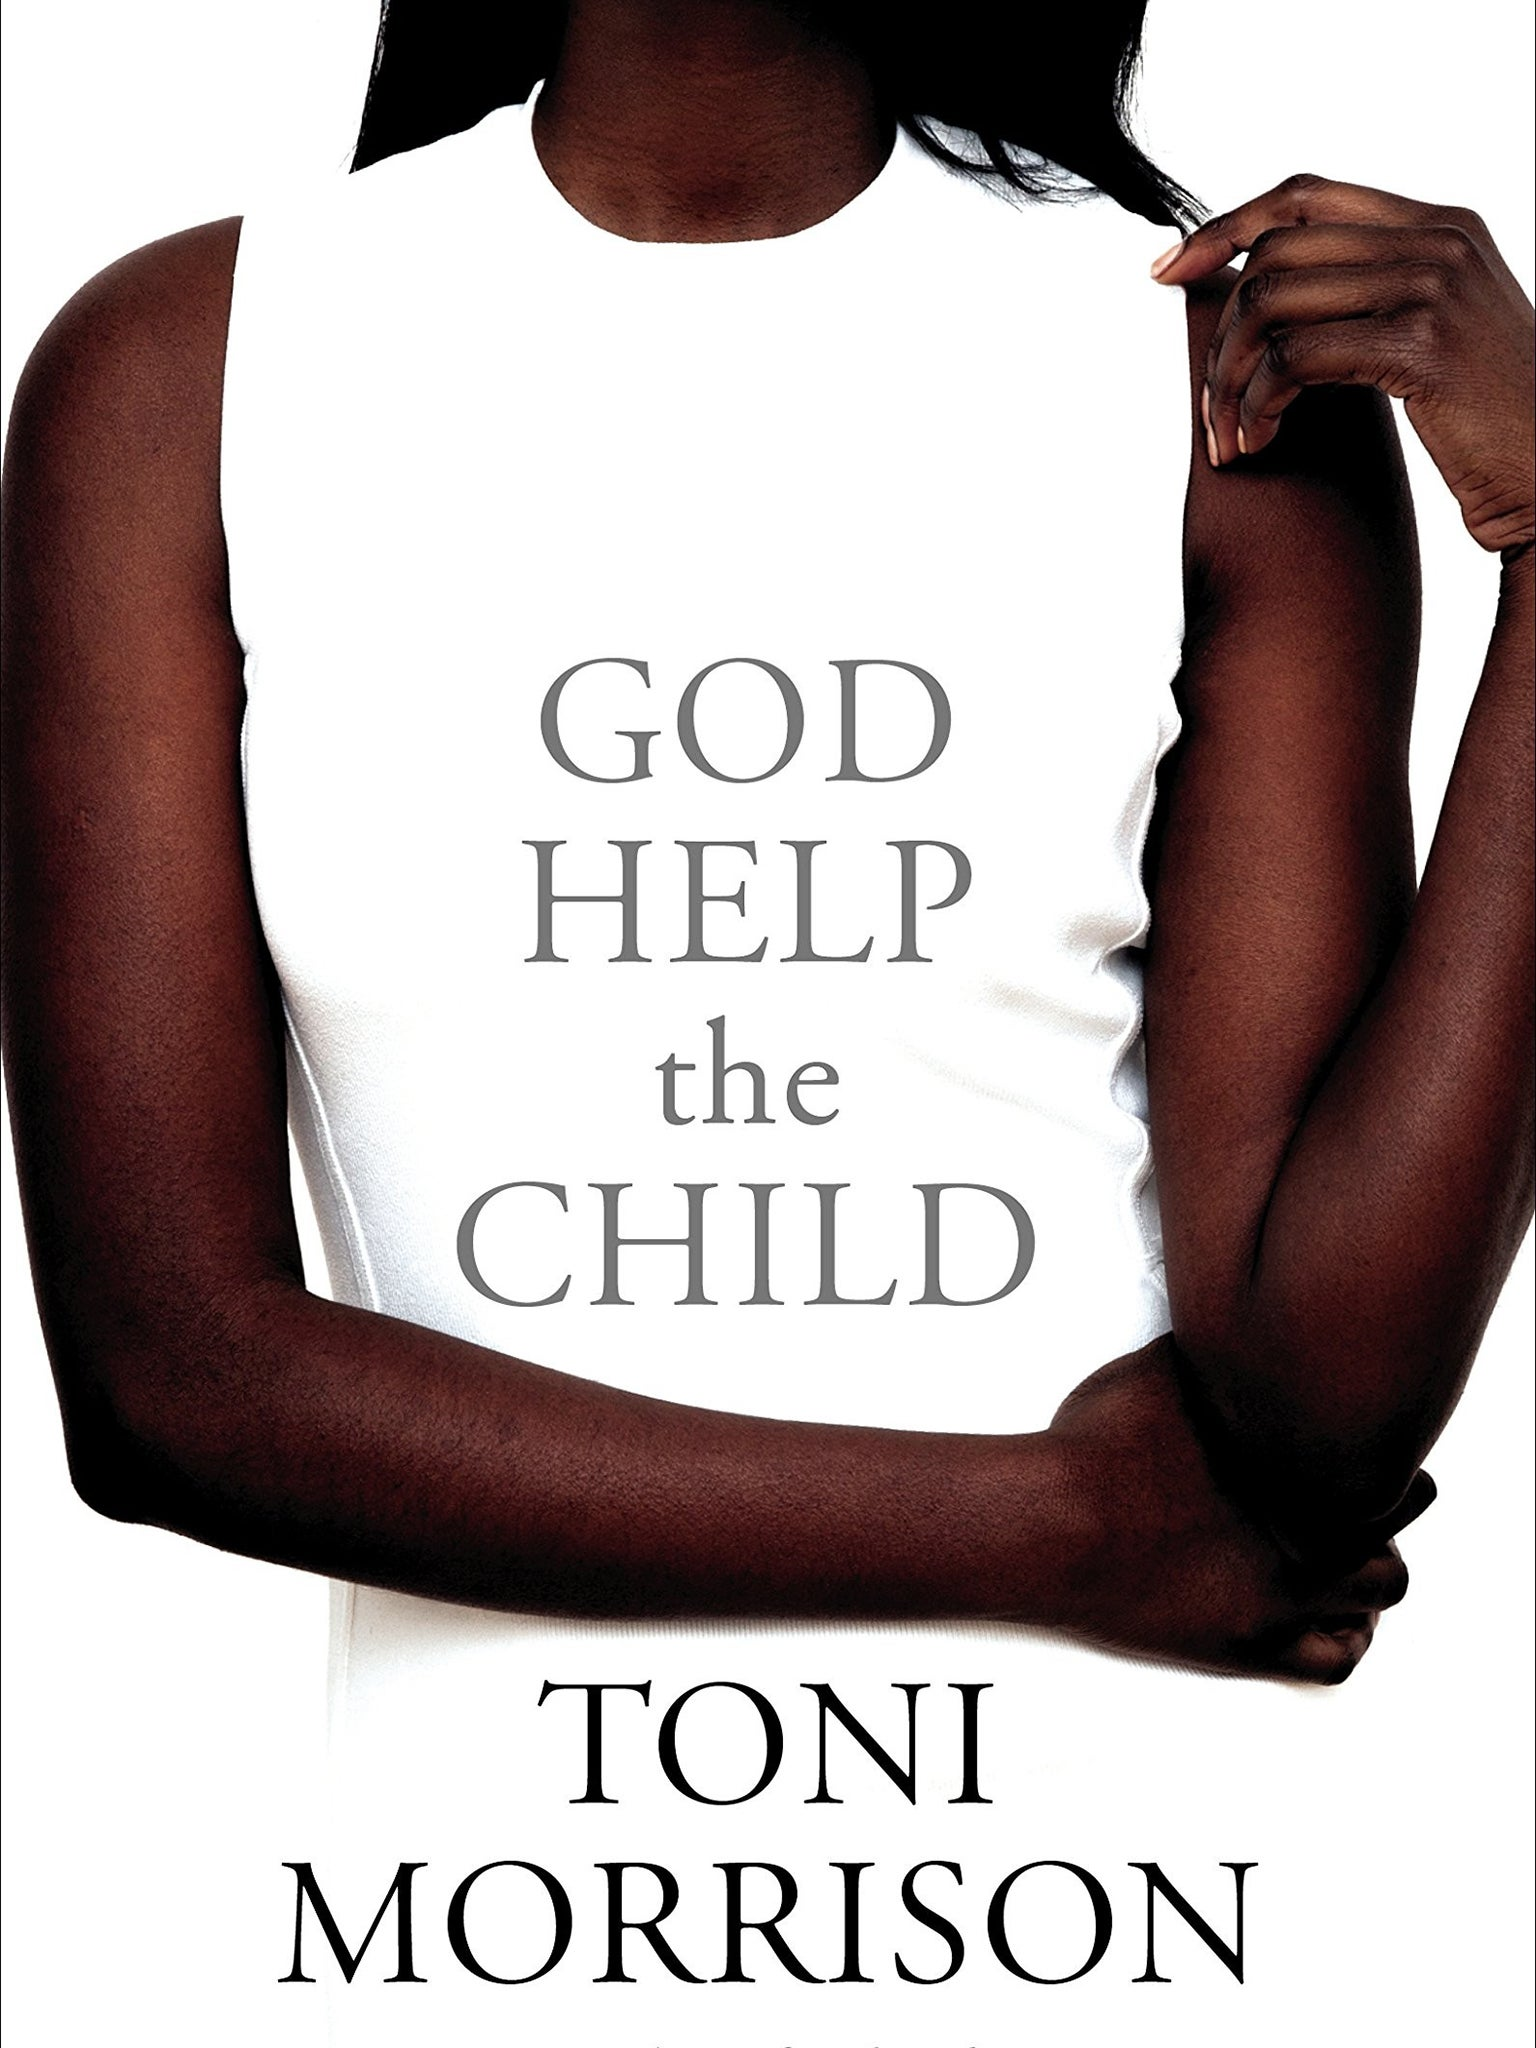 God help the child by toni morrison book review the tyranny of morrison deliberately fandeluxe